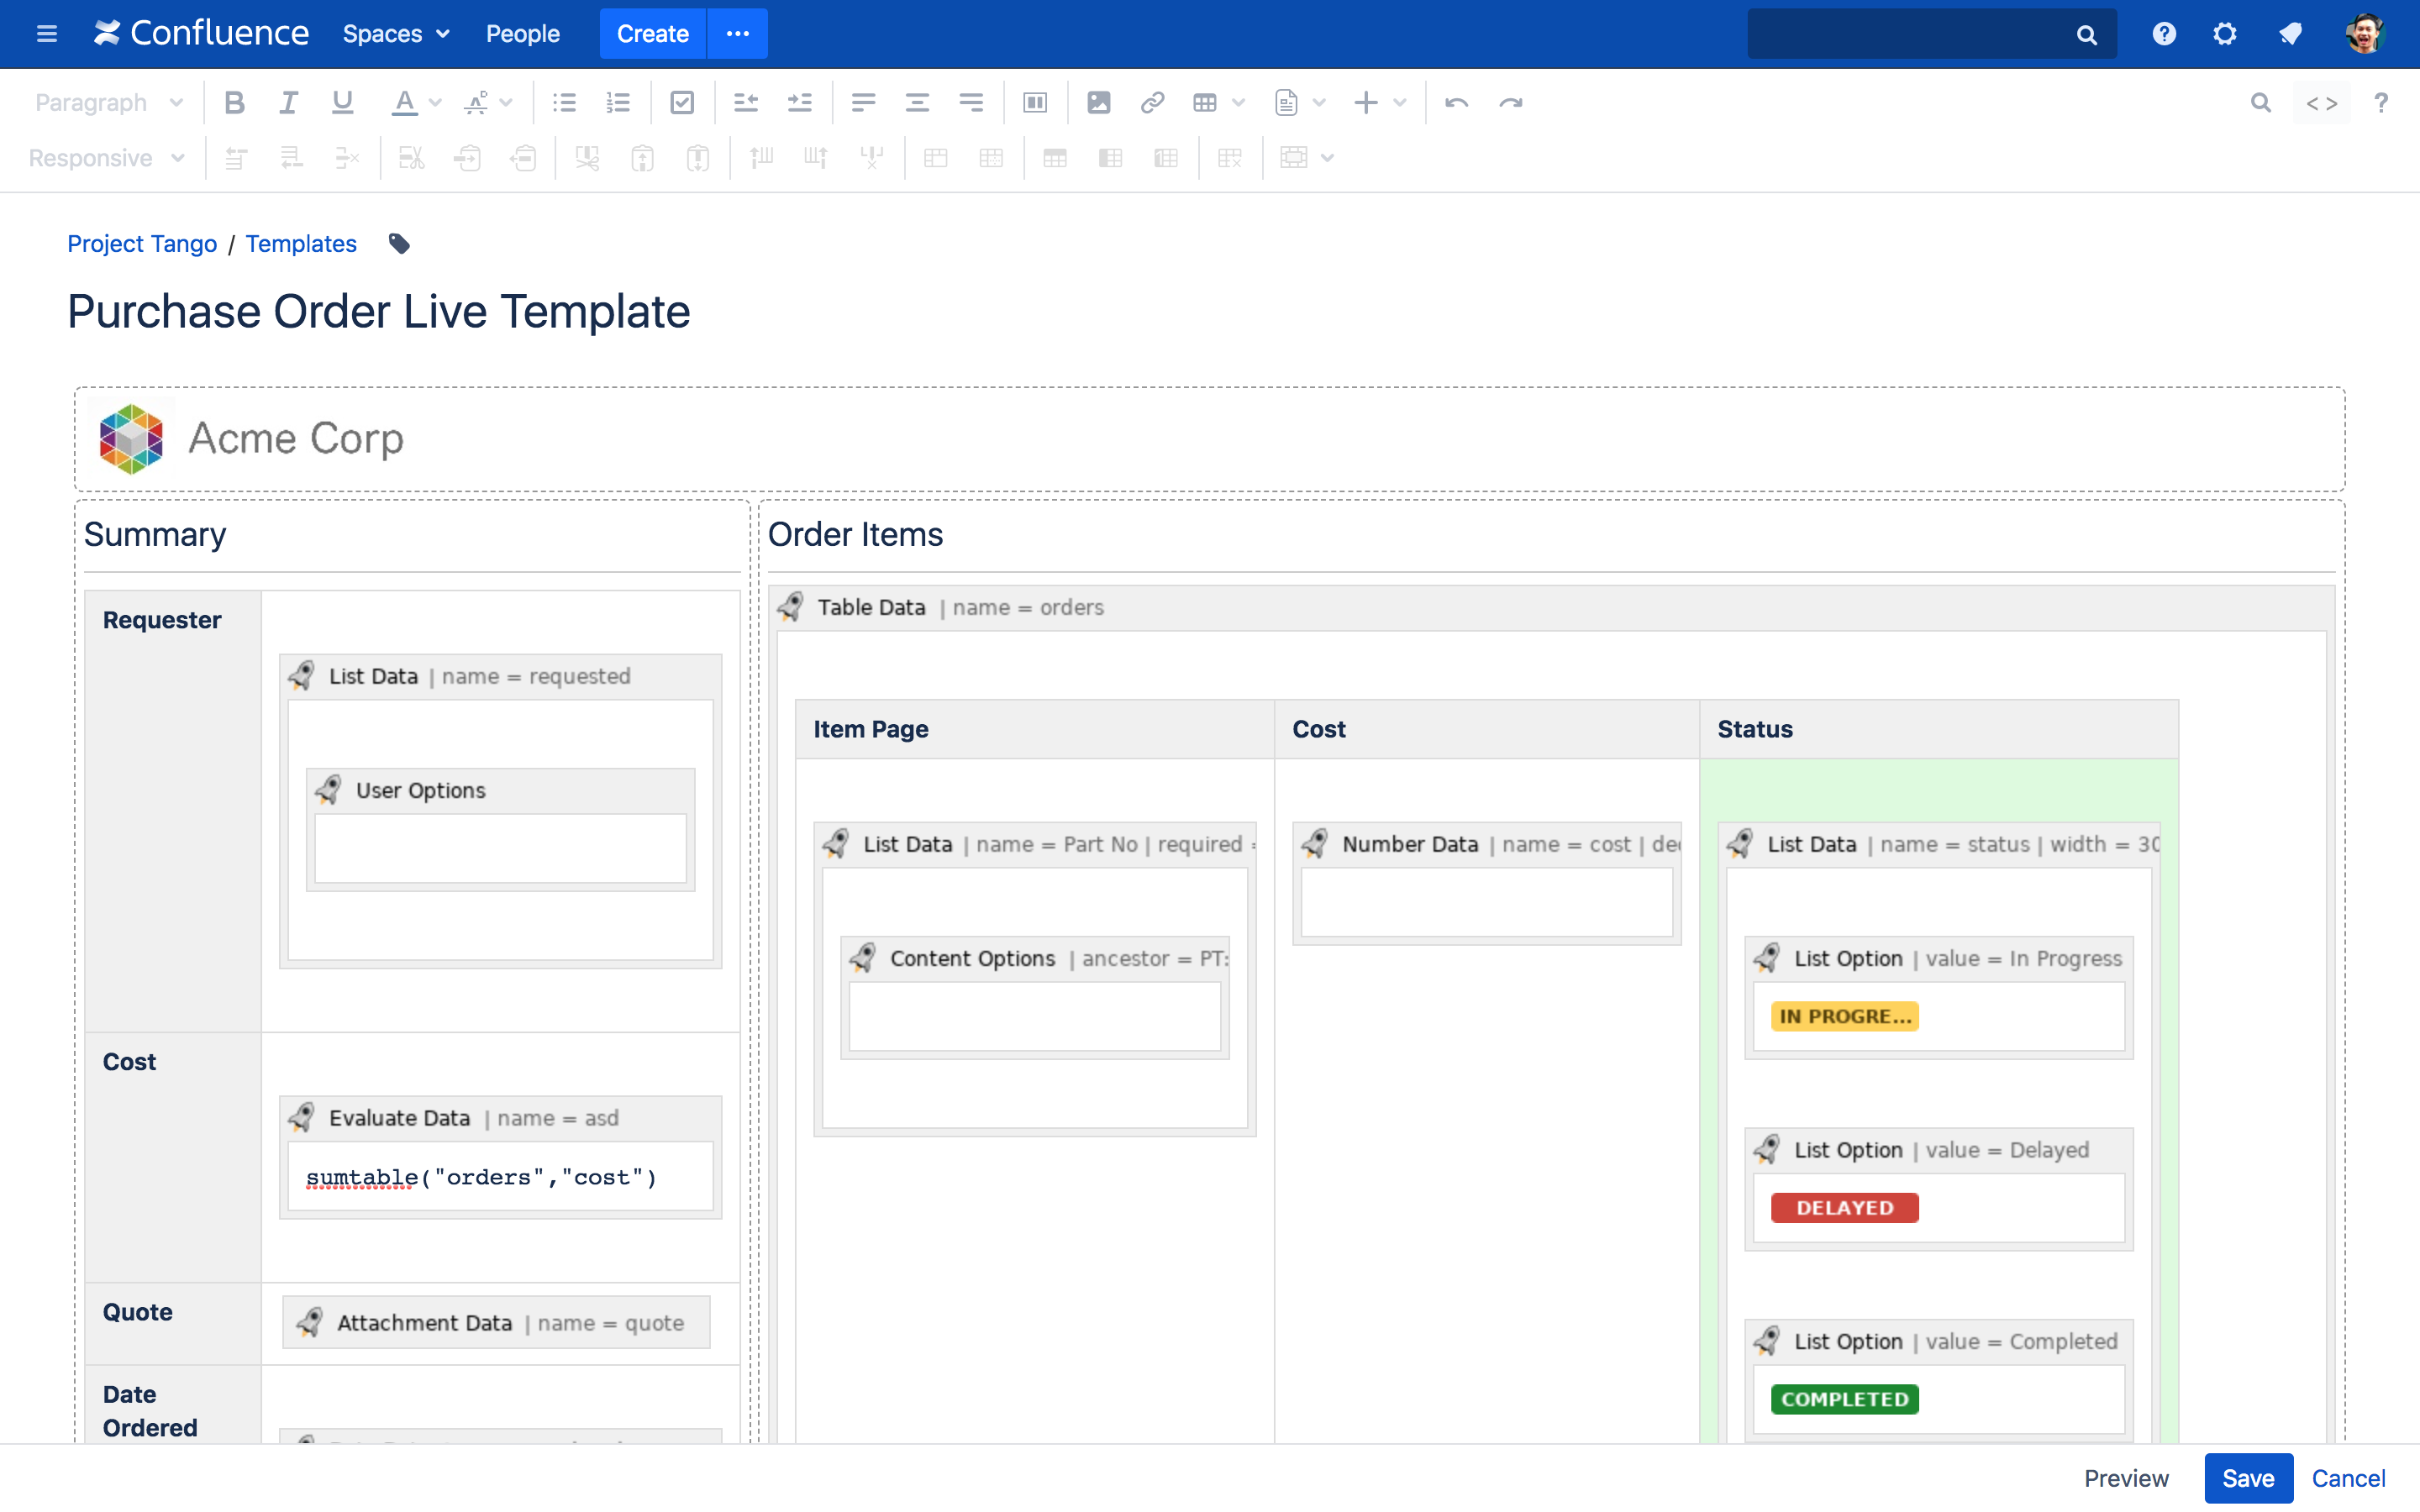 Connector for Salesforce and Jira